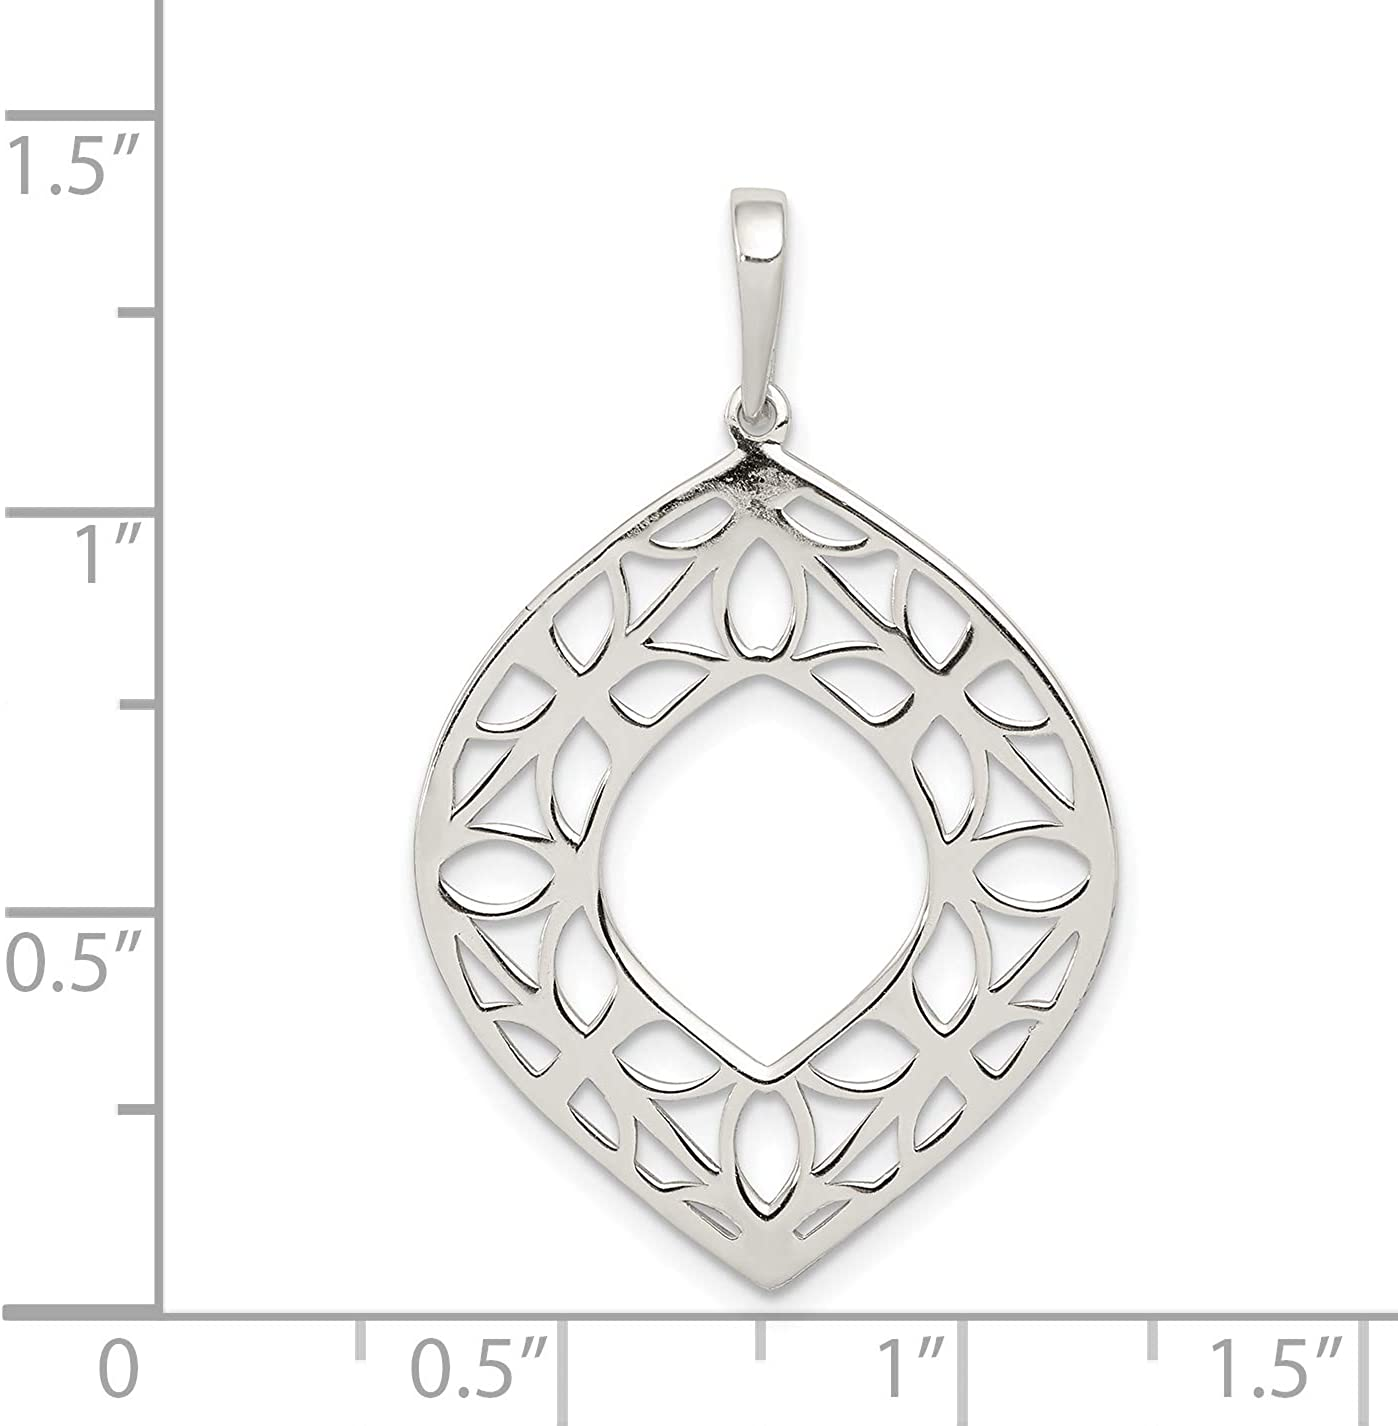 Mireval Sterling Silver Polished Me and Mom Pendant approximately 30 x 23 mm